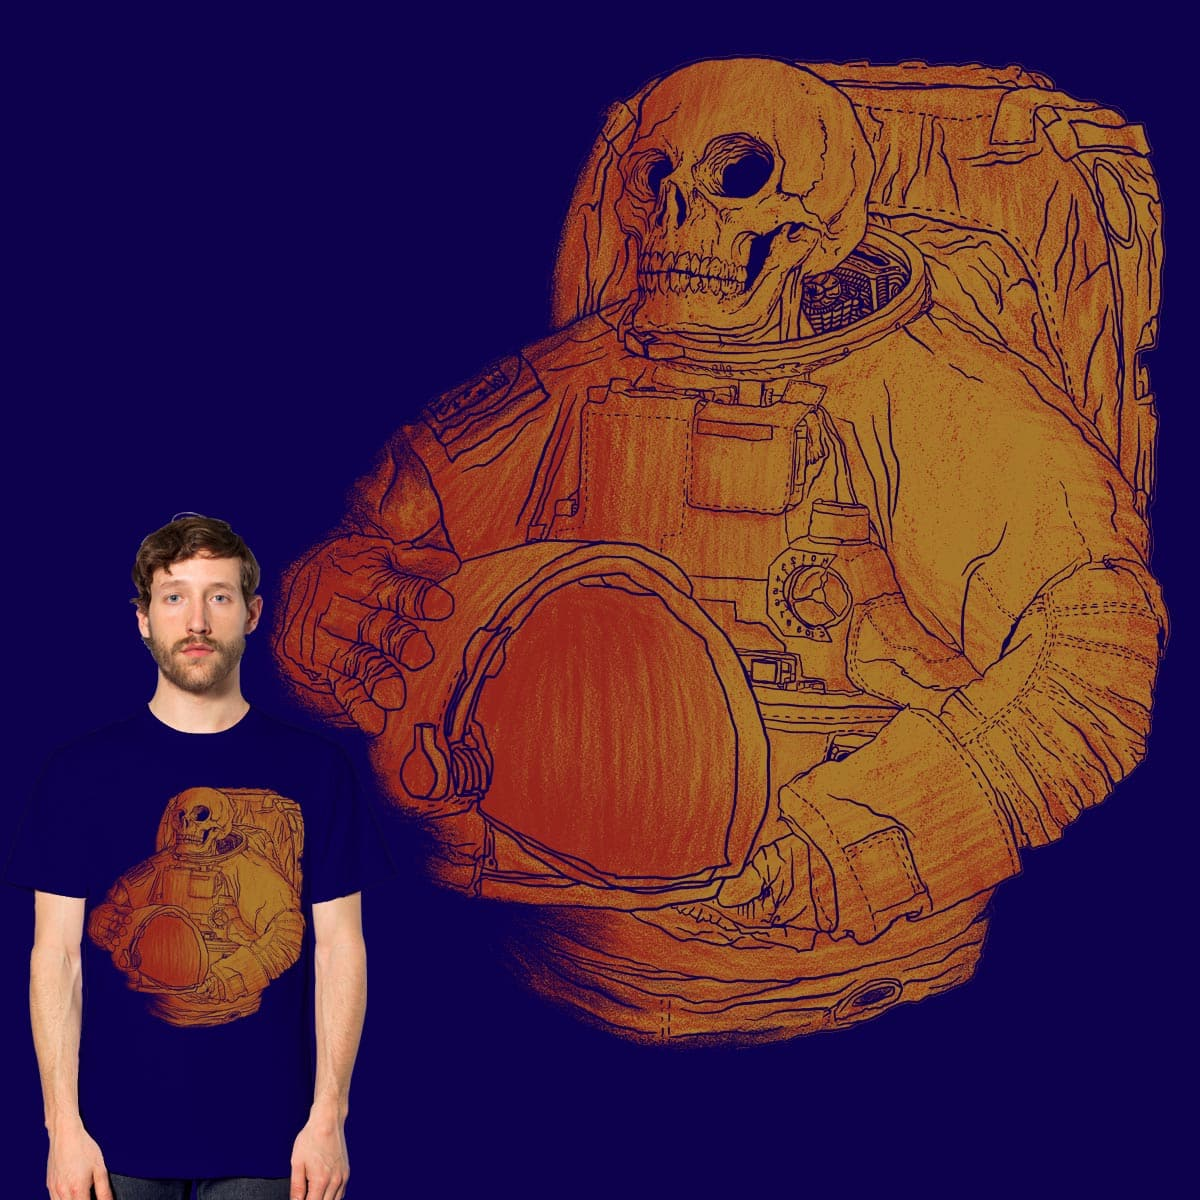 astronaut skull by gupikus on Threadless